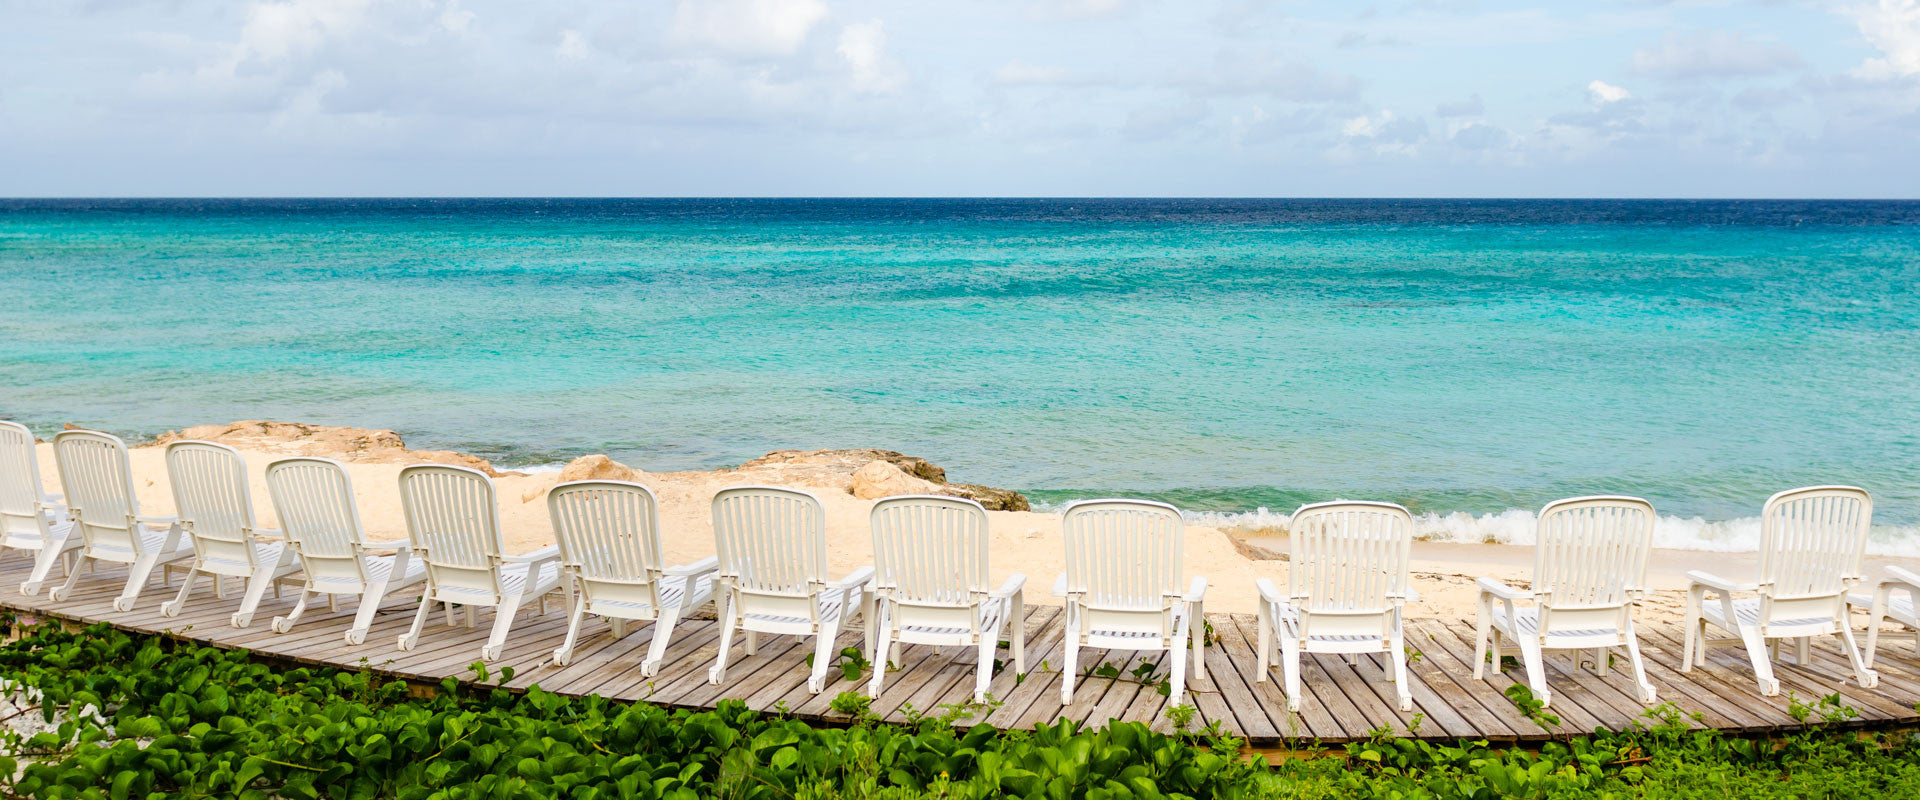 Chairs on a Tropical Beach LookLagoon Lifestyle